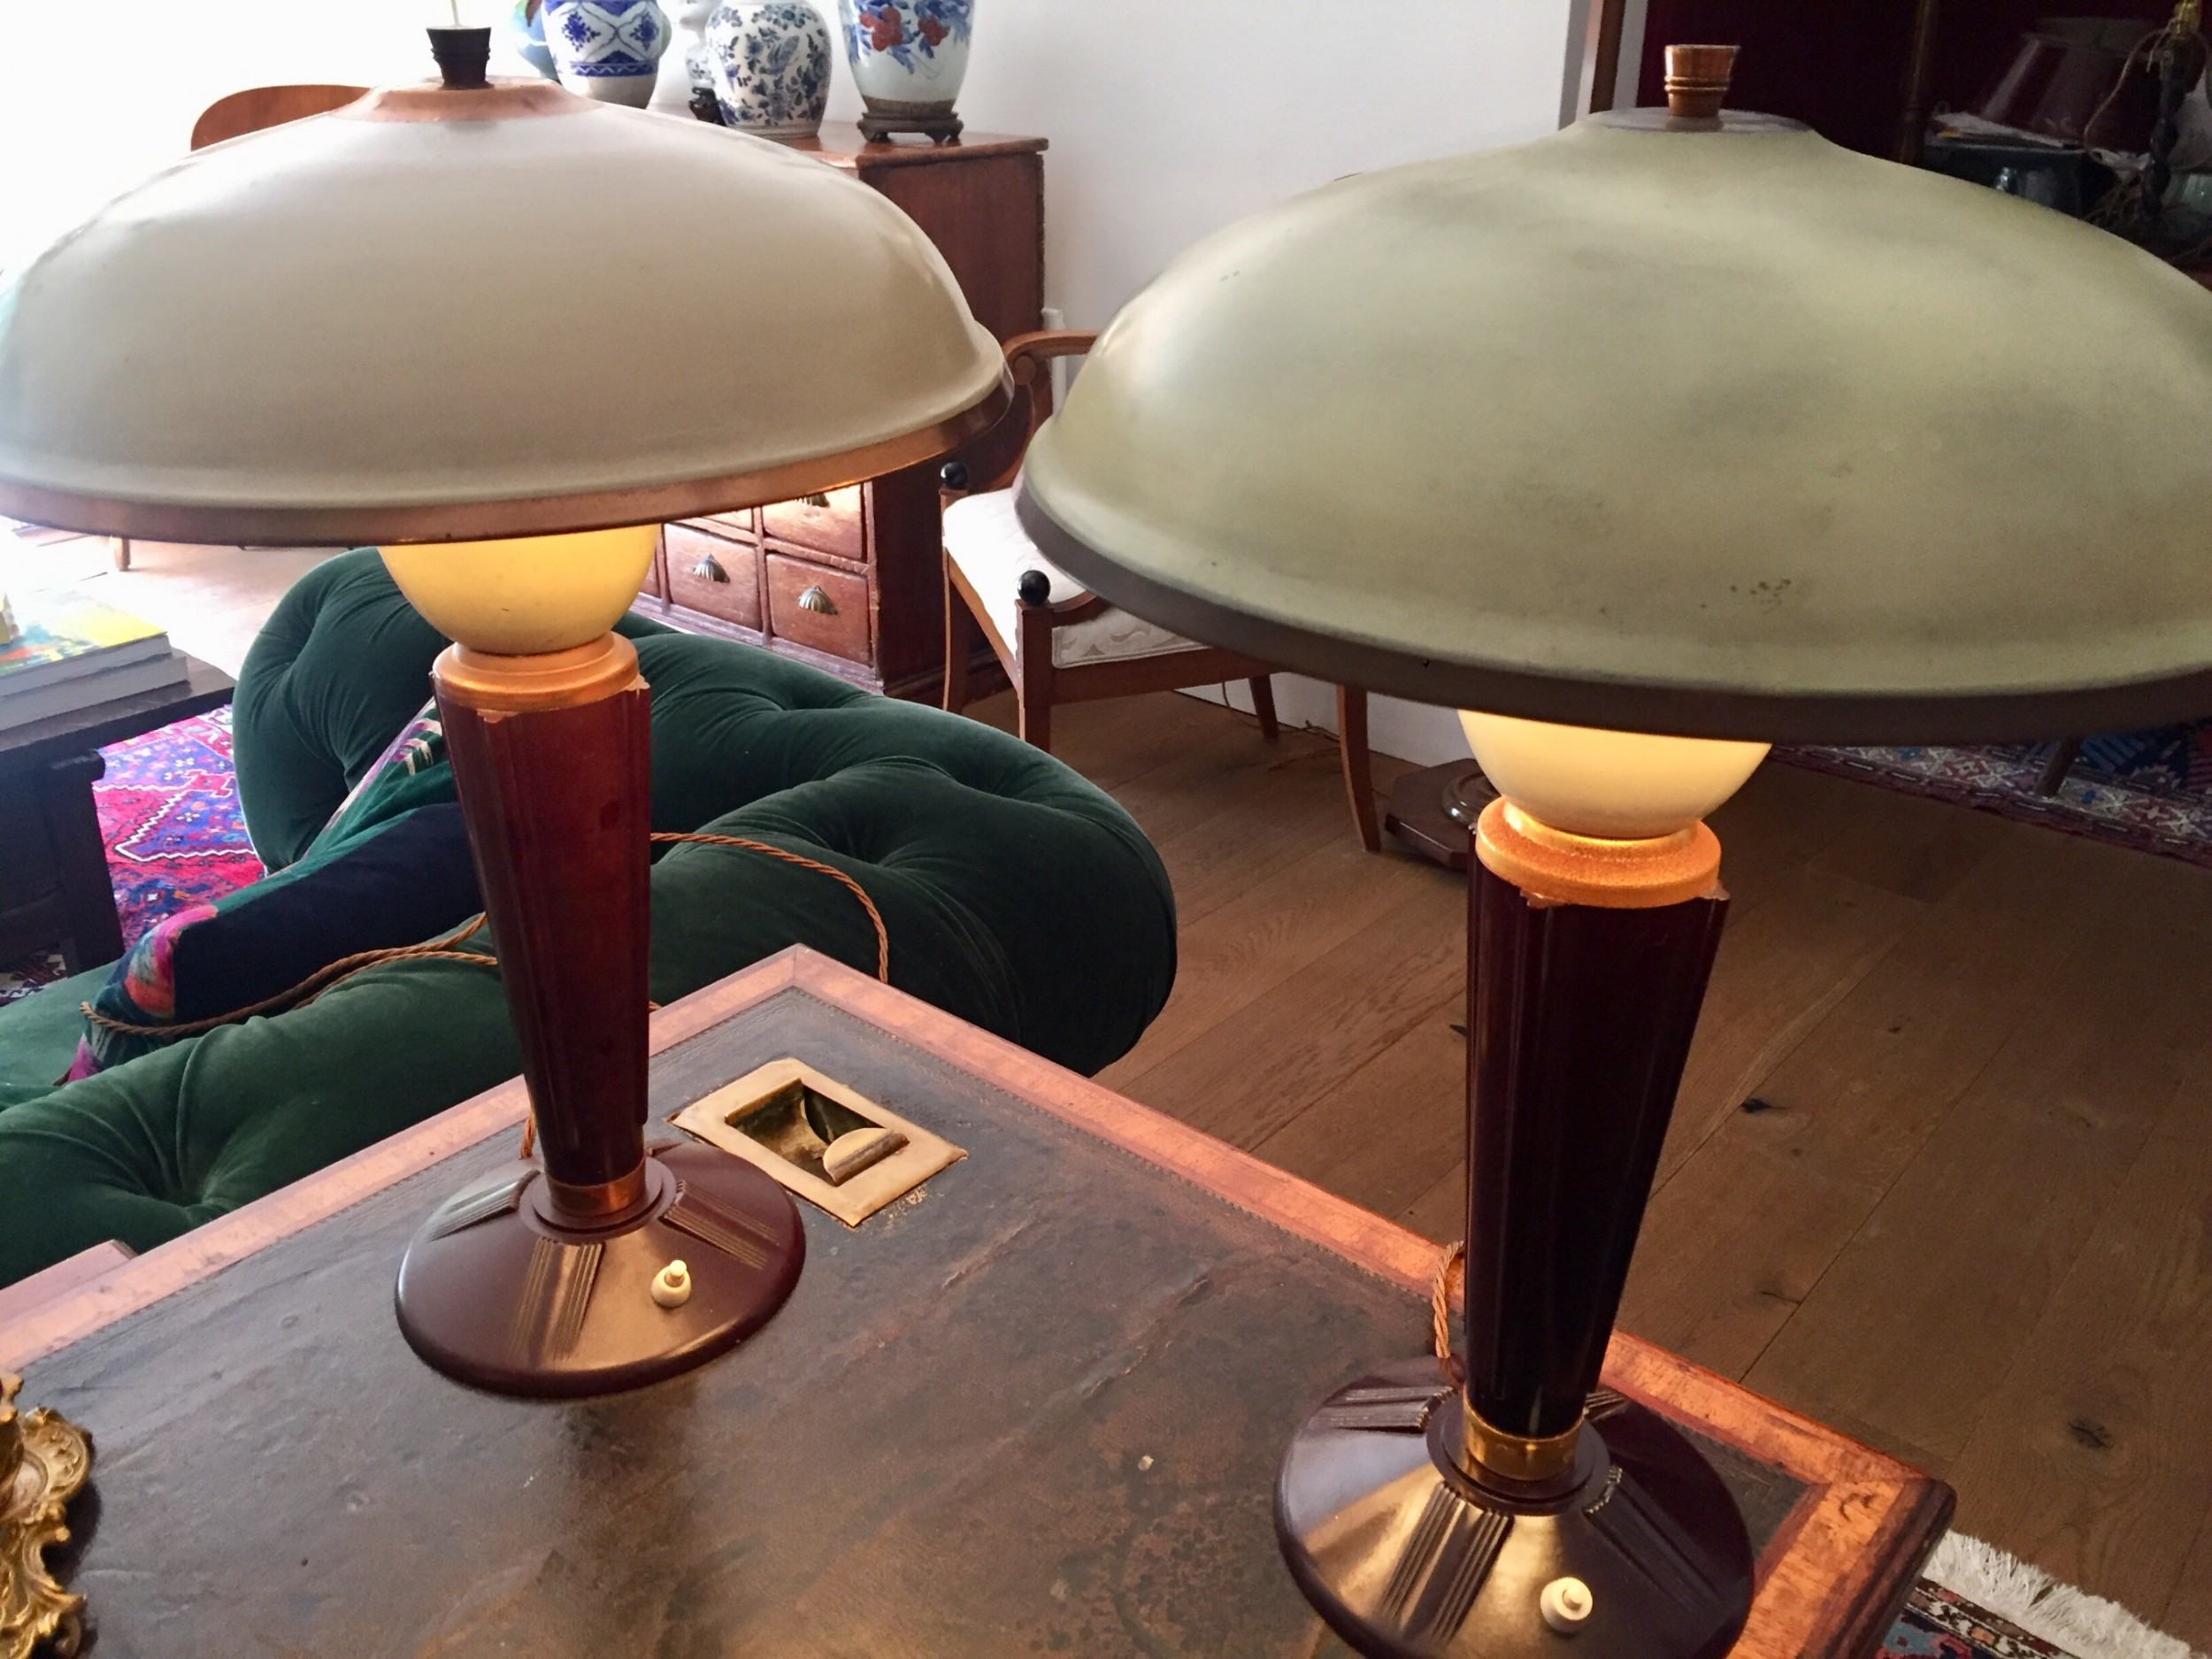 iconic near pair art deco jumo desk lamps bakelite